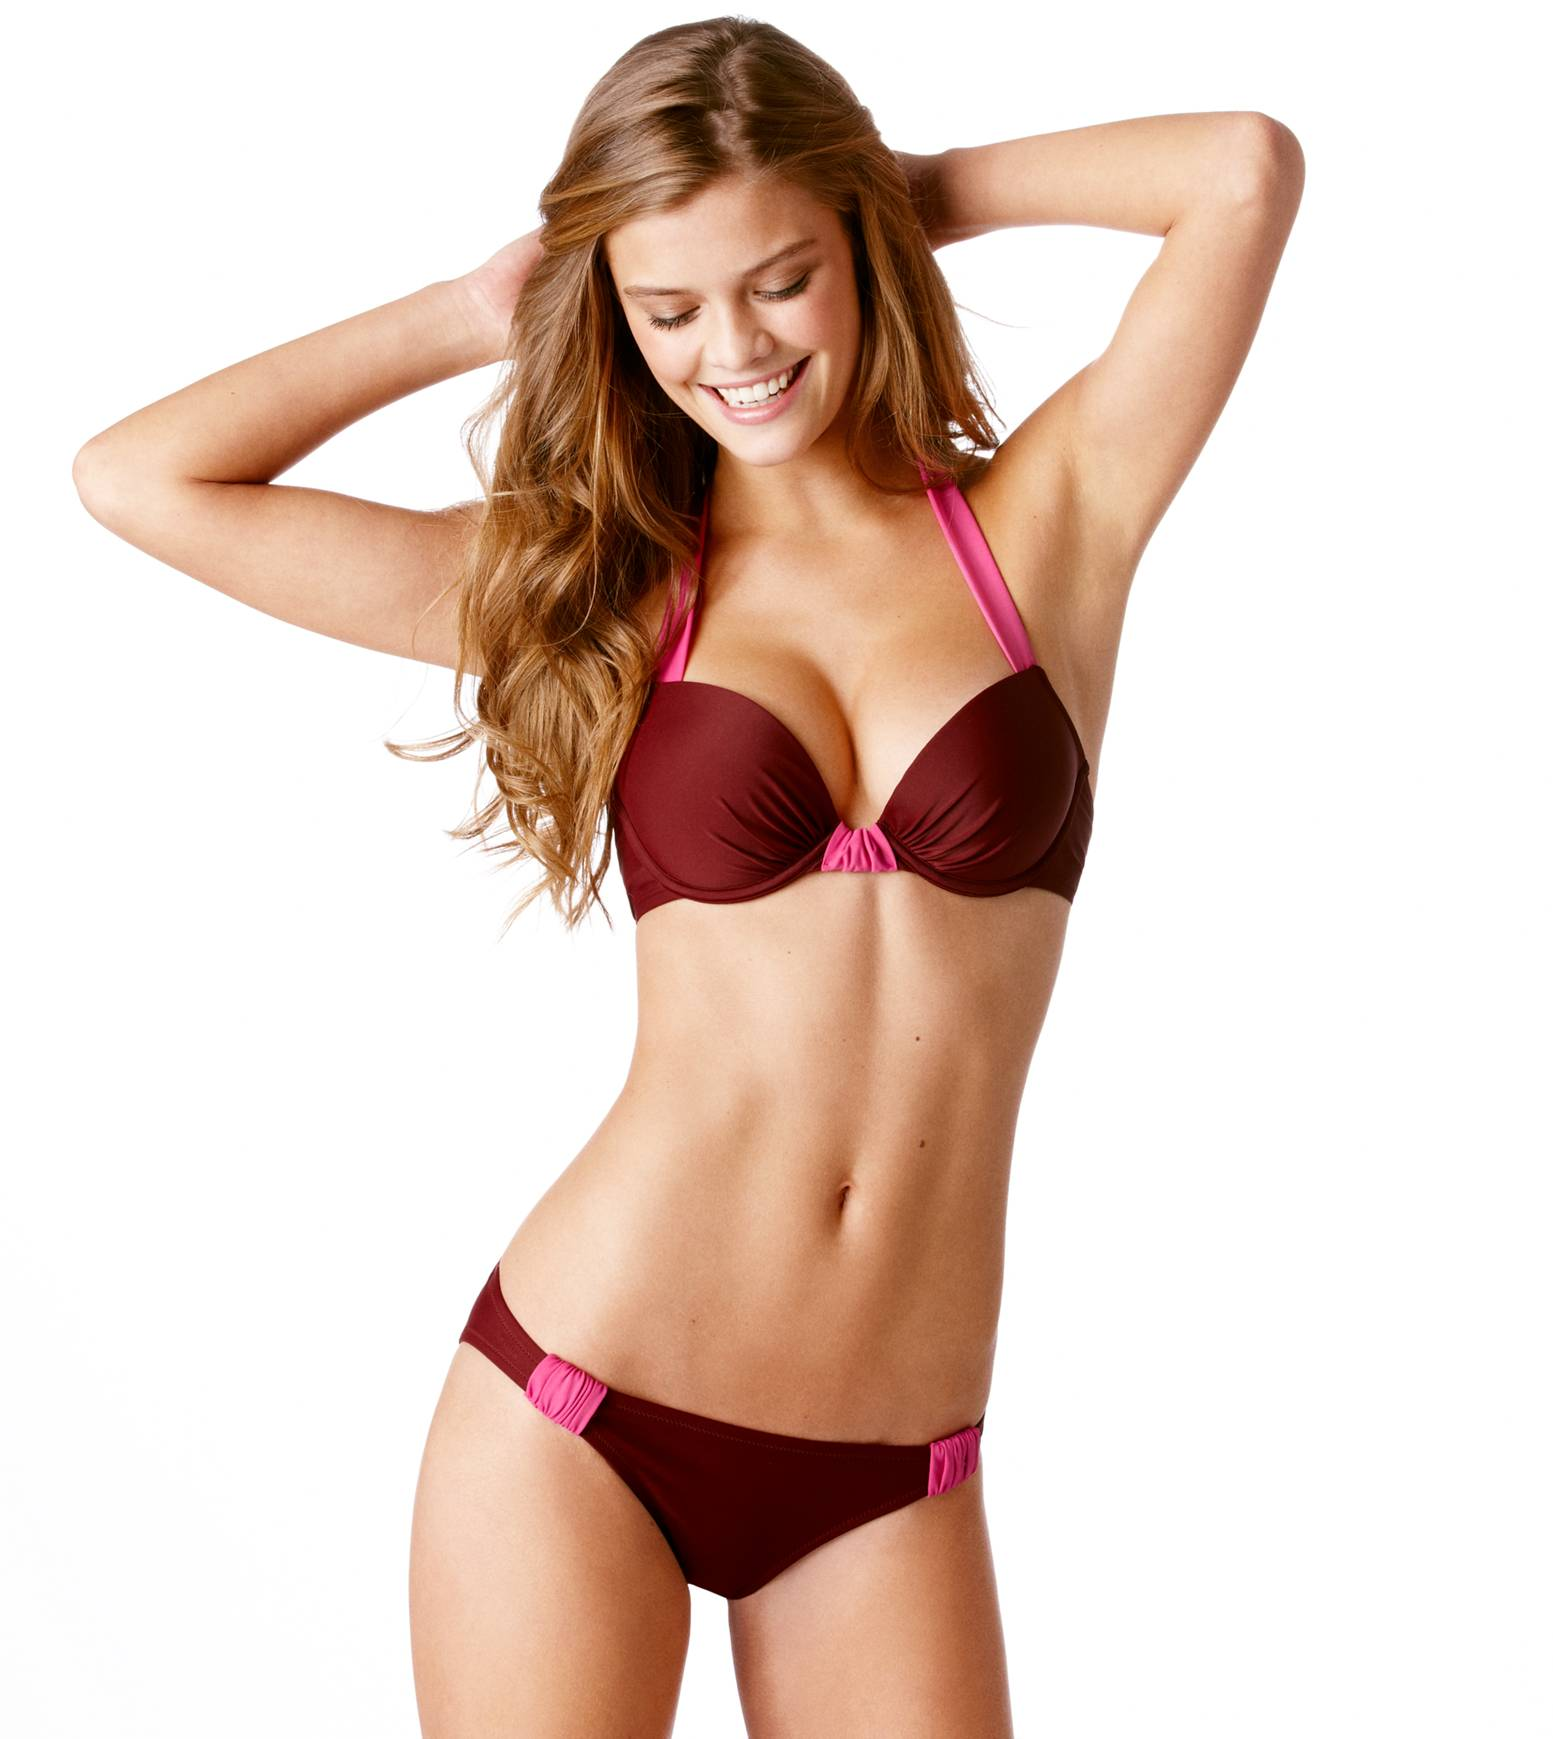 nina-agdal-aerie-swim-may-2013-set-2-28